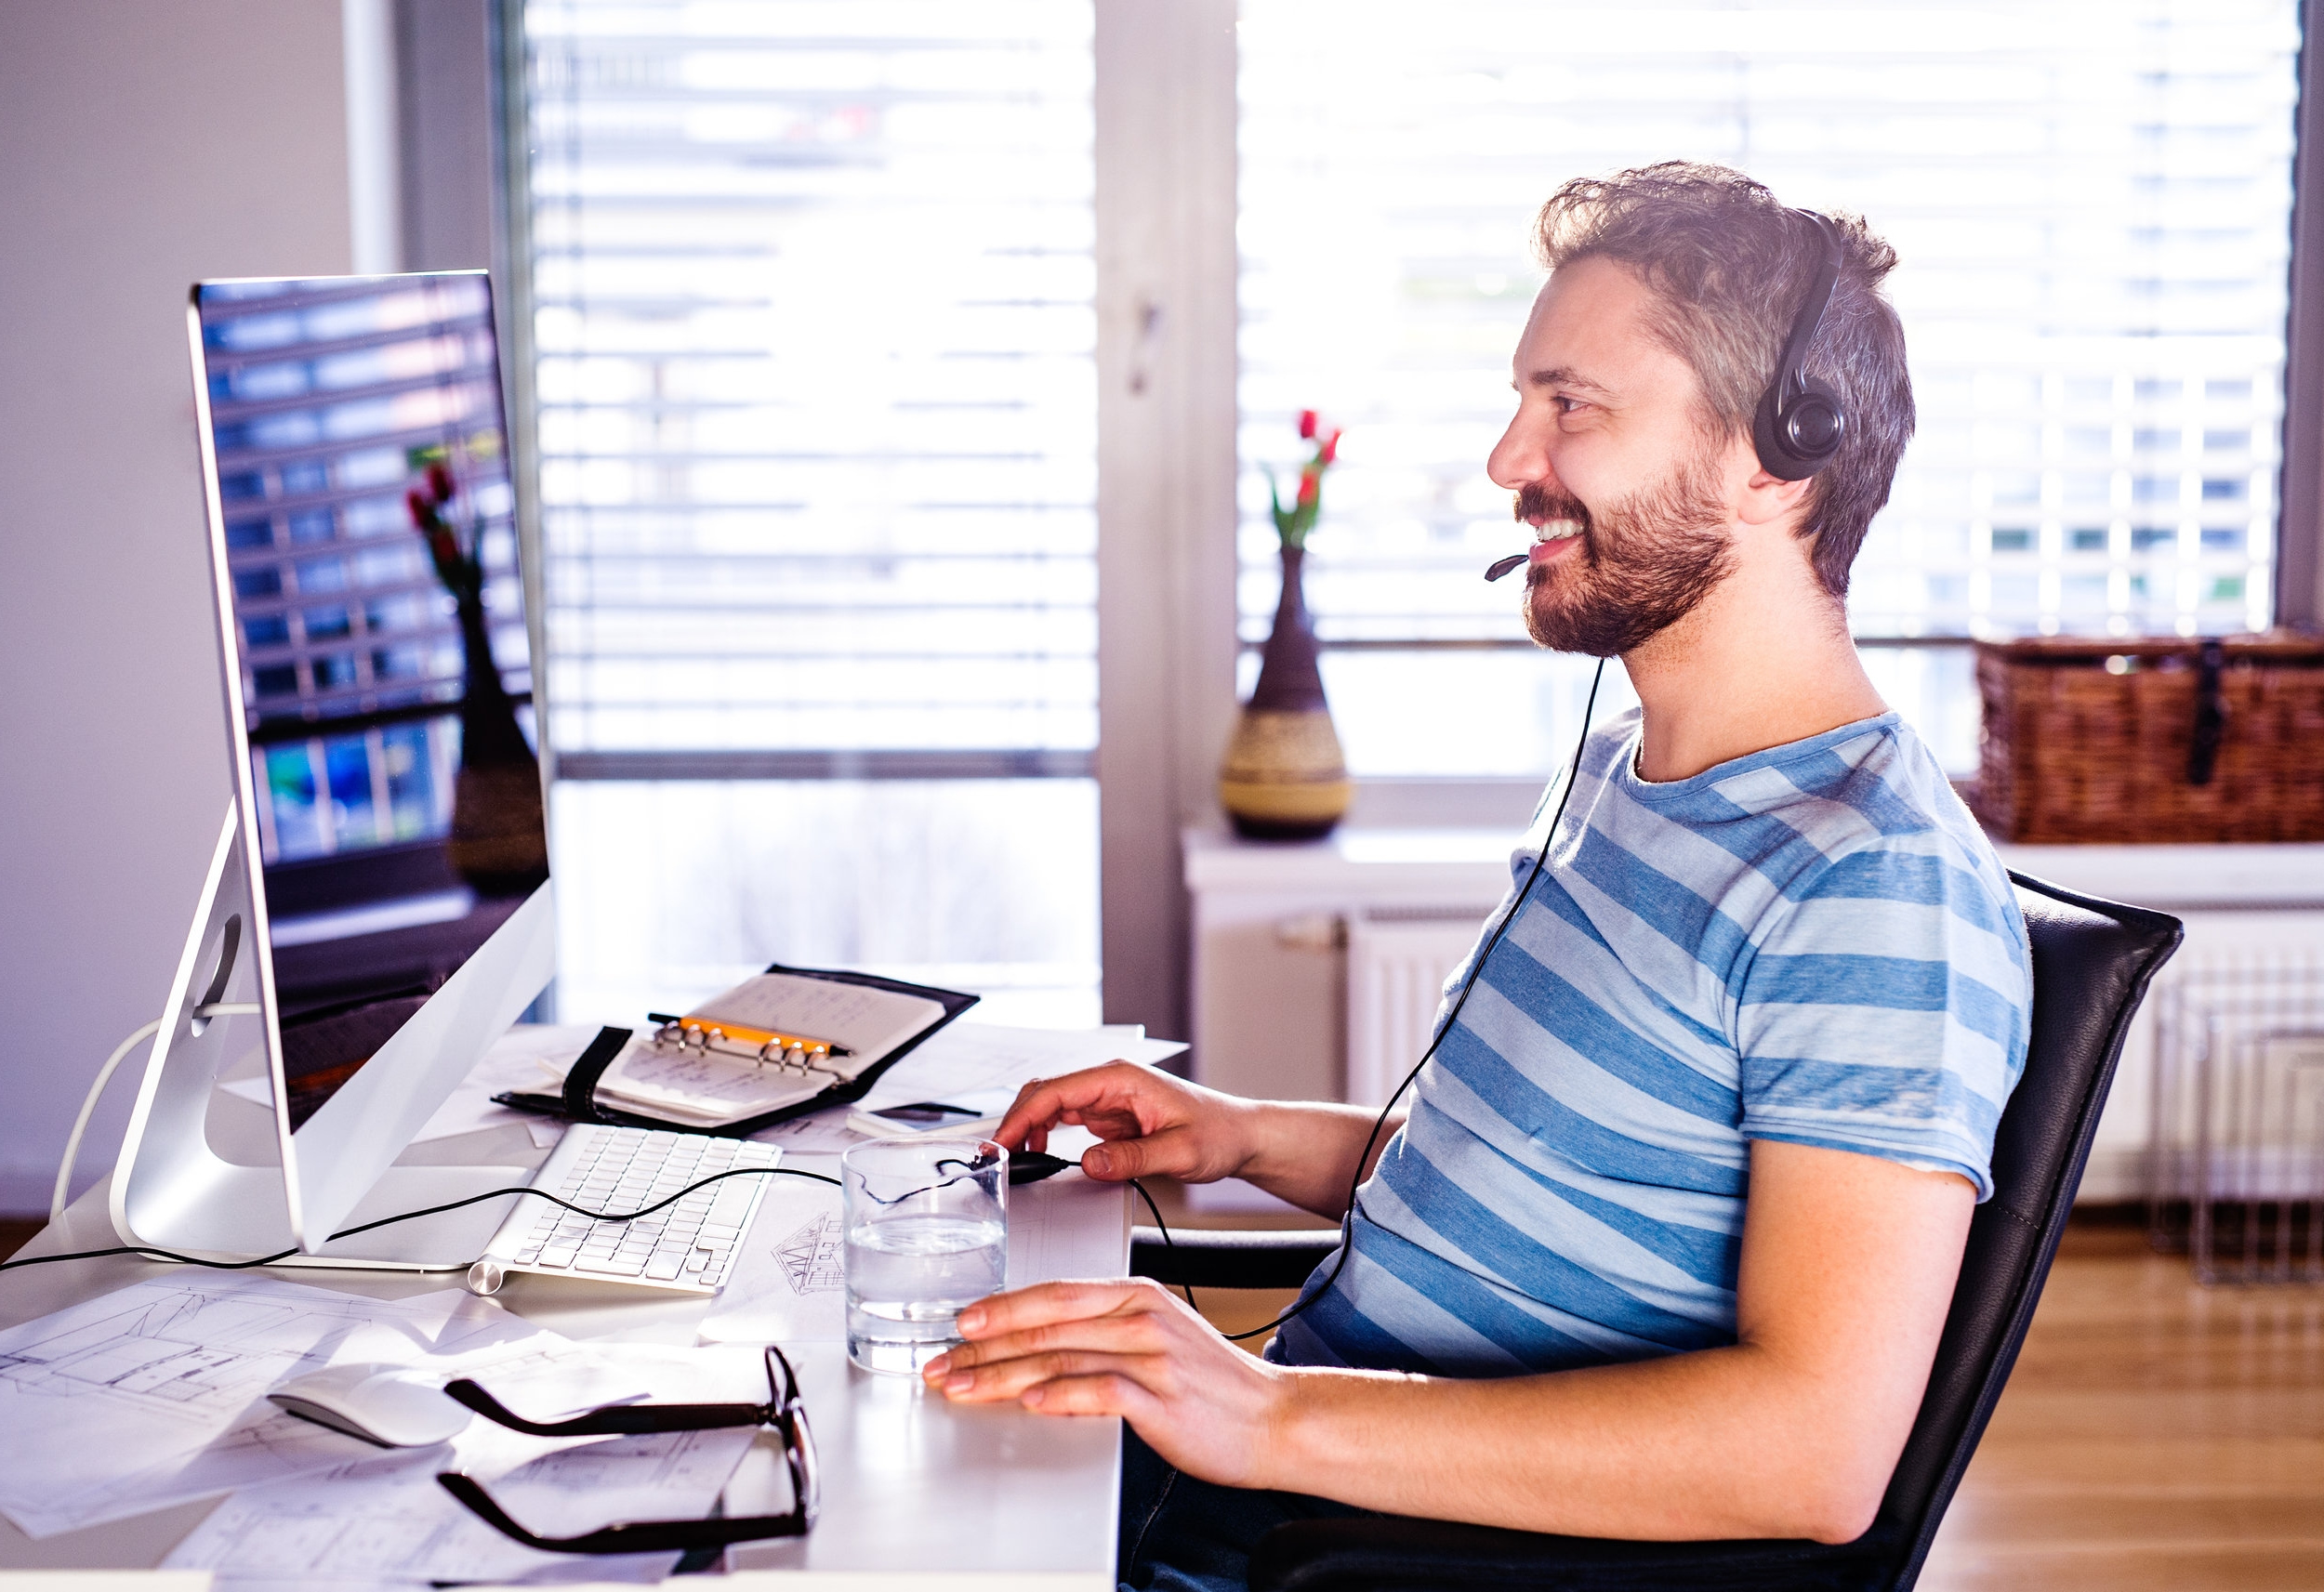 Operations and Business - We have some great systems to help even the smallest of business appear larger, streamline operations and increase productivity. From top notch phone systems to HR and Payroll support, we're here for you.